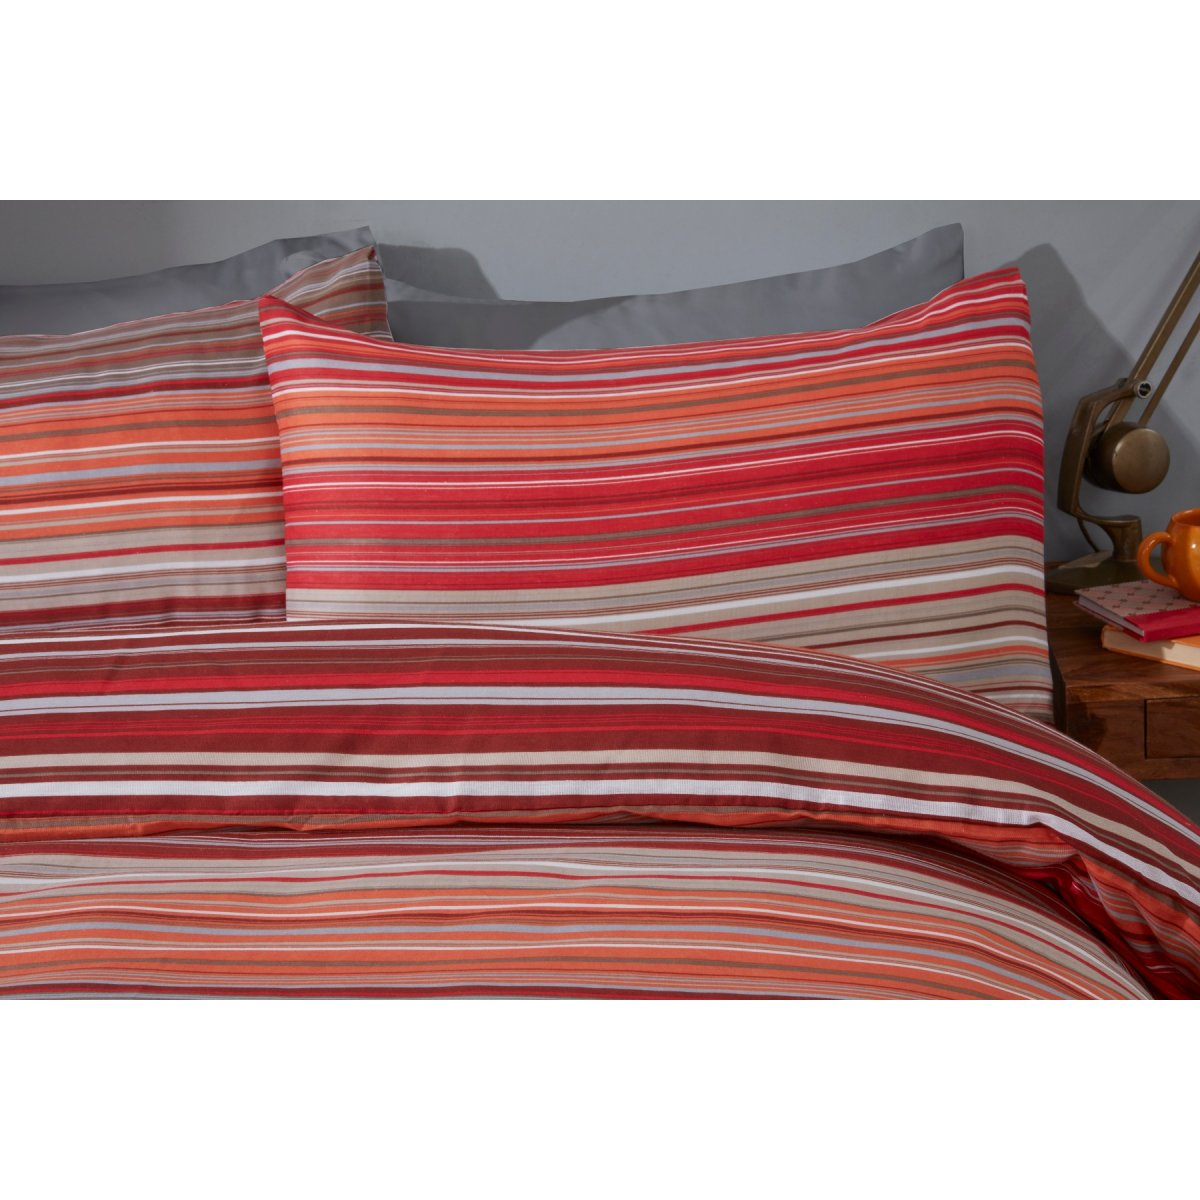 Ombre Stripe Red Bedding - Reversible Duvet Cover and Pillowcase Set